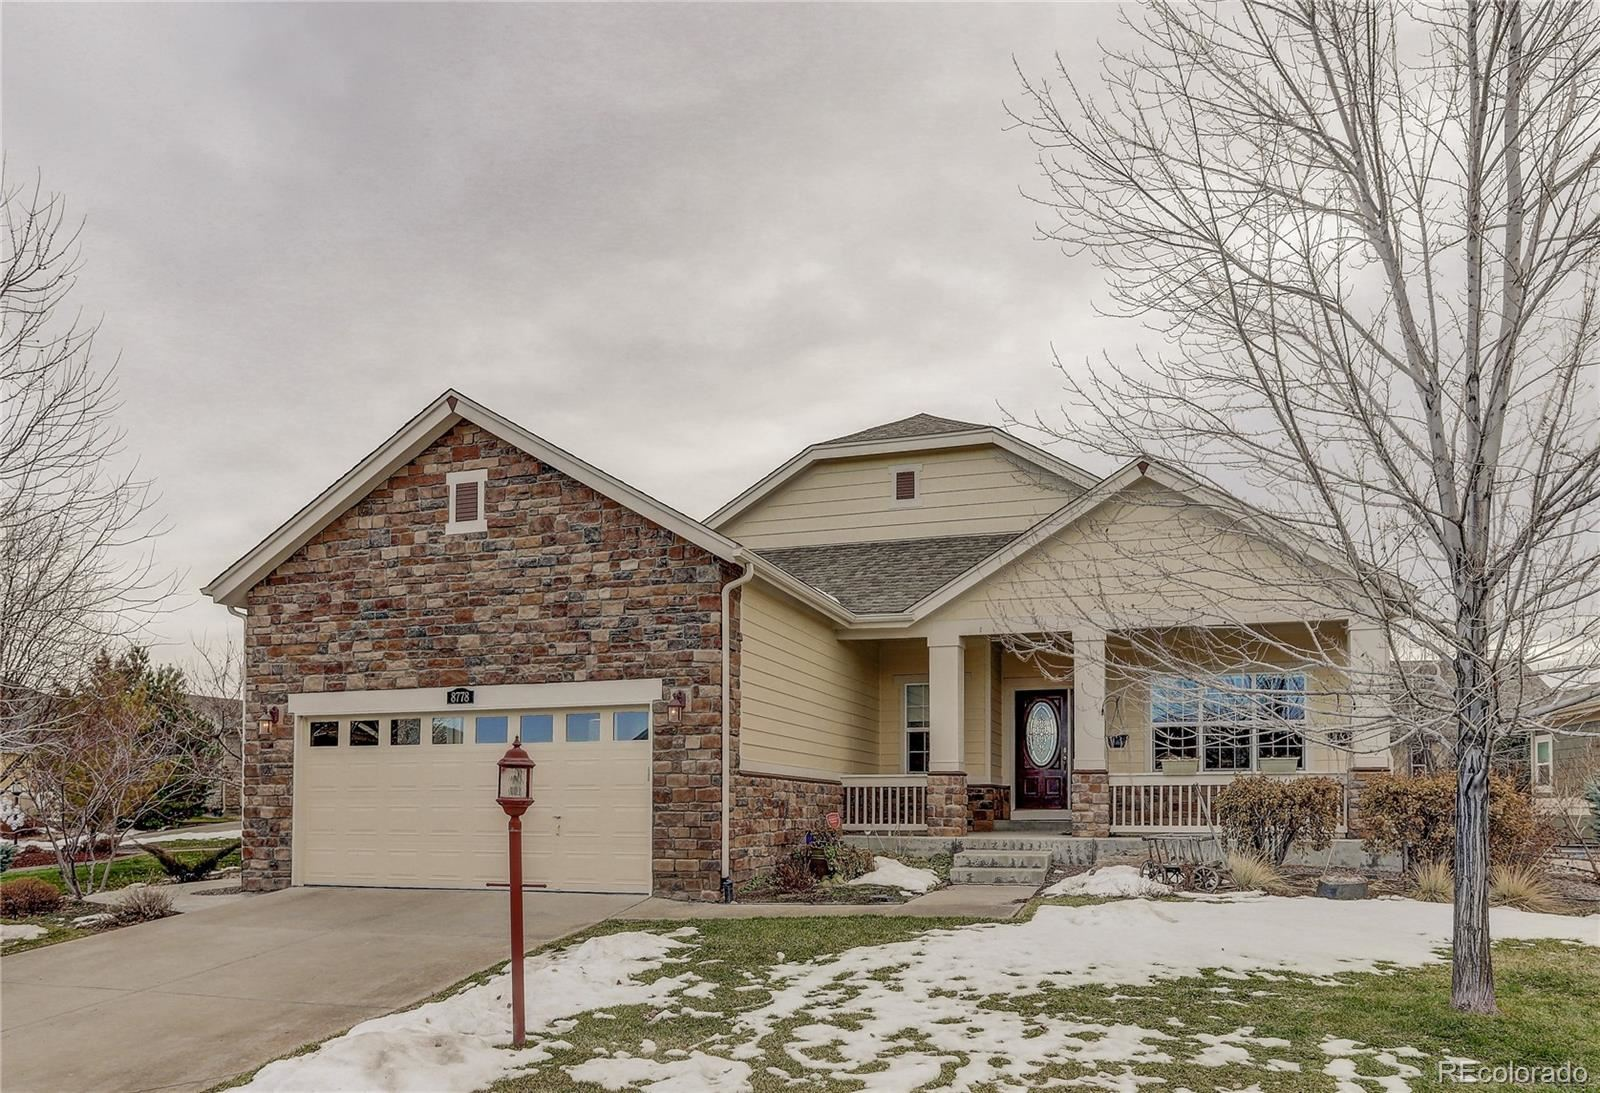 8778 E 152nd Place, Thornton, CO 80602 - #: 8062848